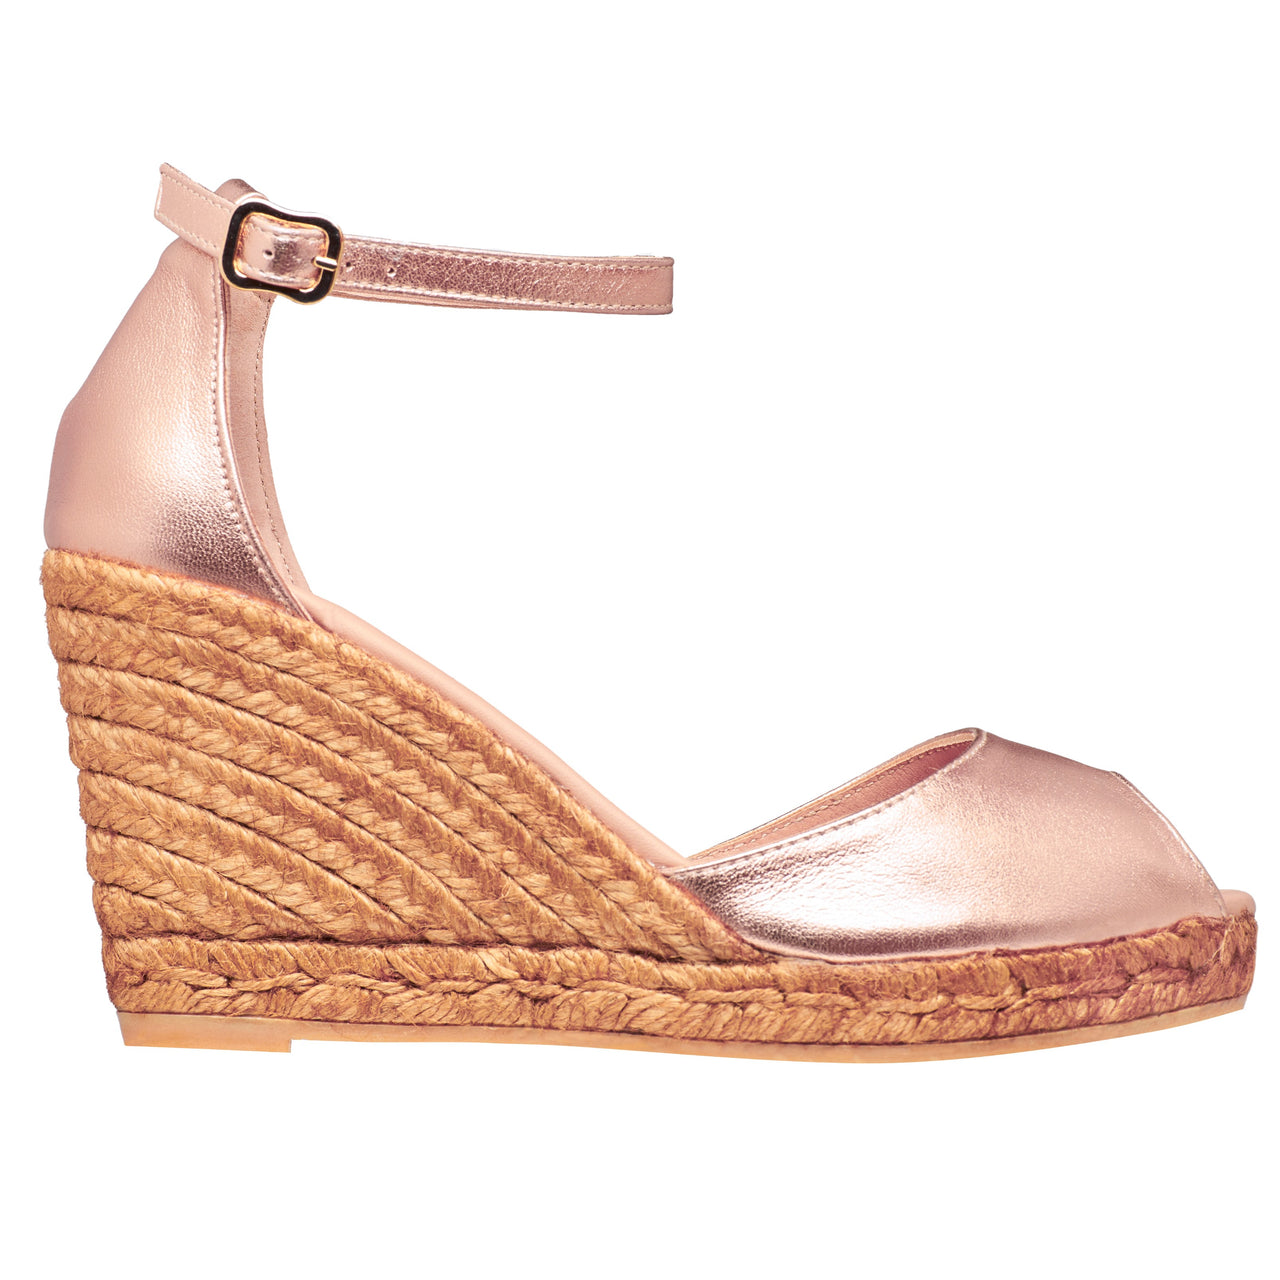 CADAQUES Rose Gold espadrilles - Badt and Co - singapore